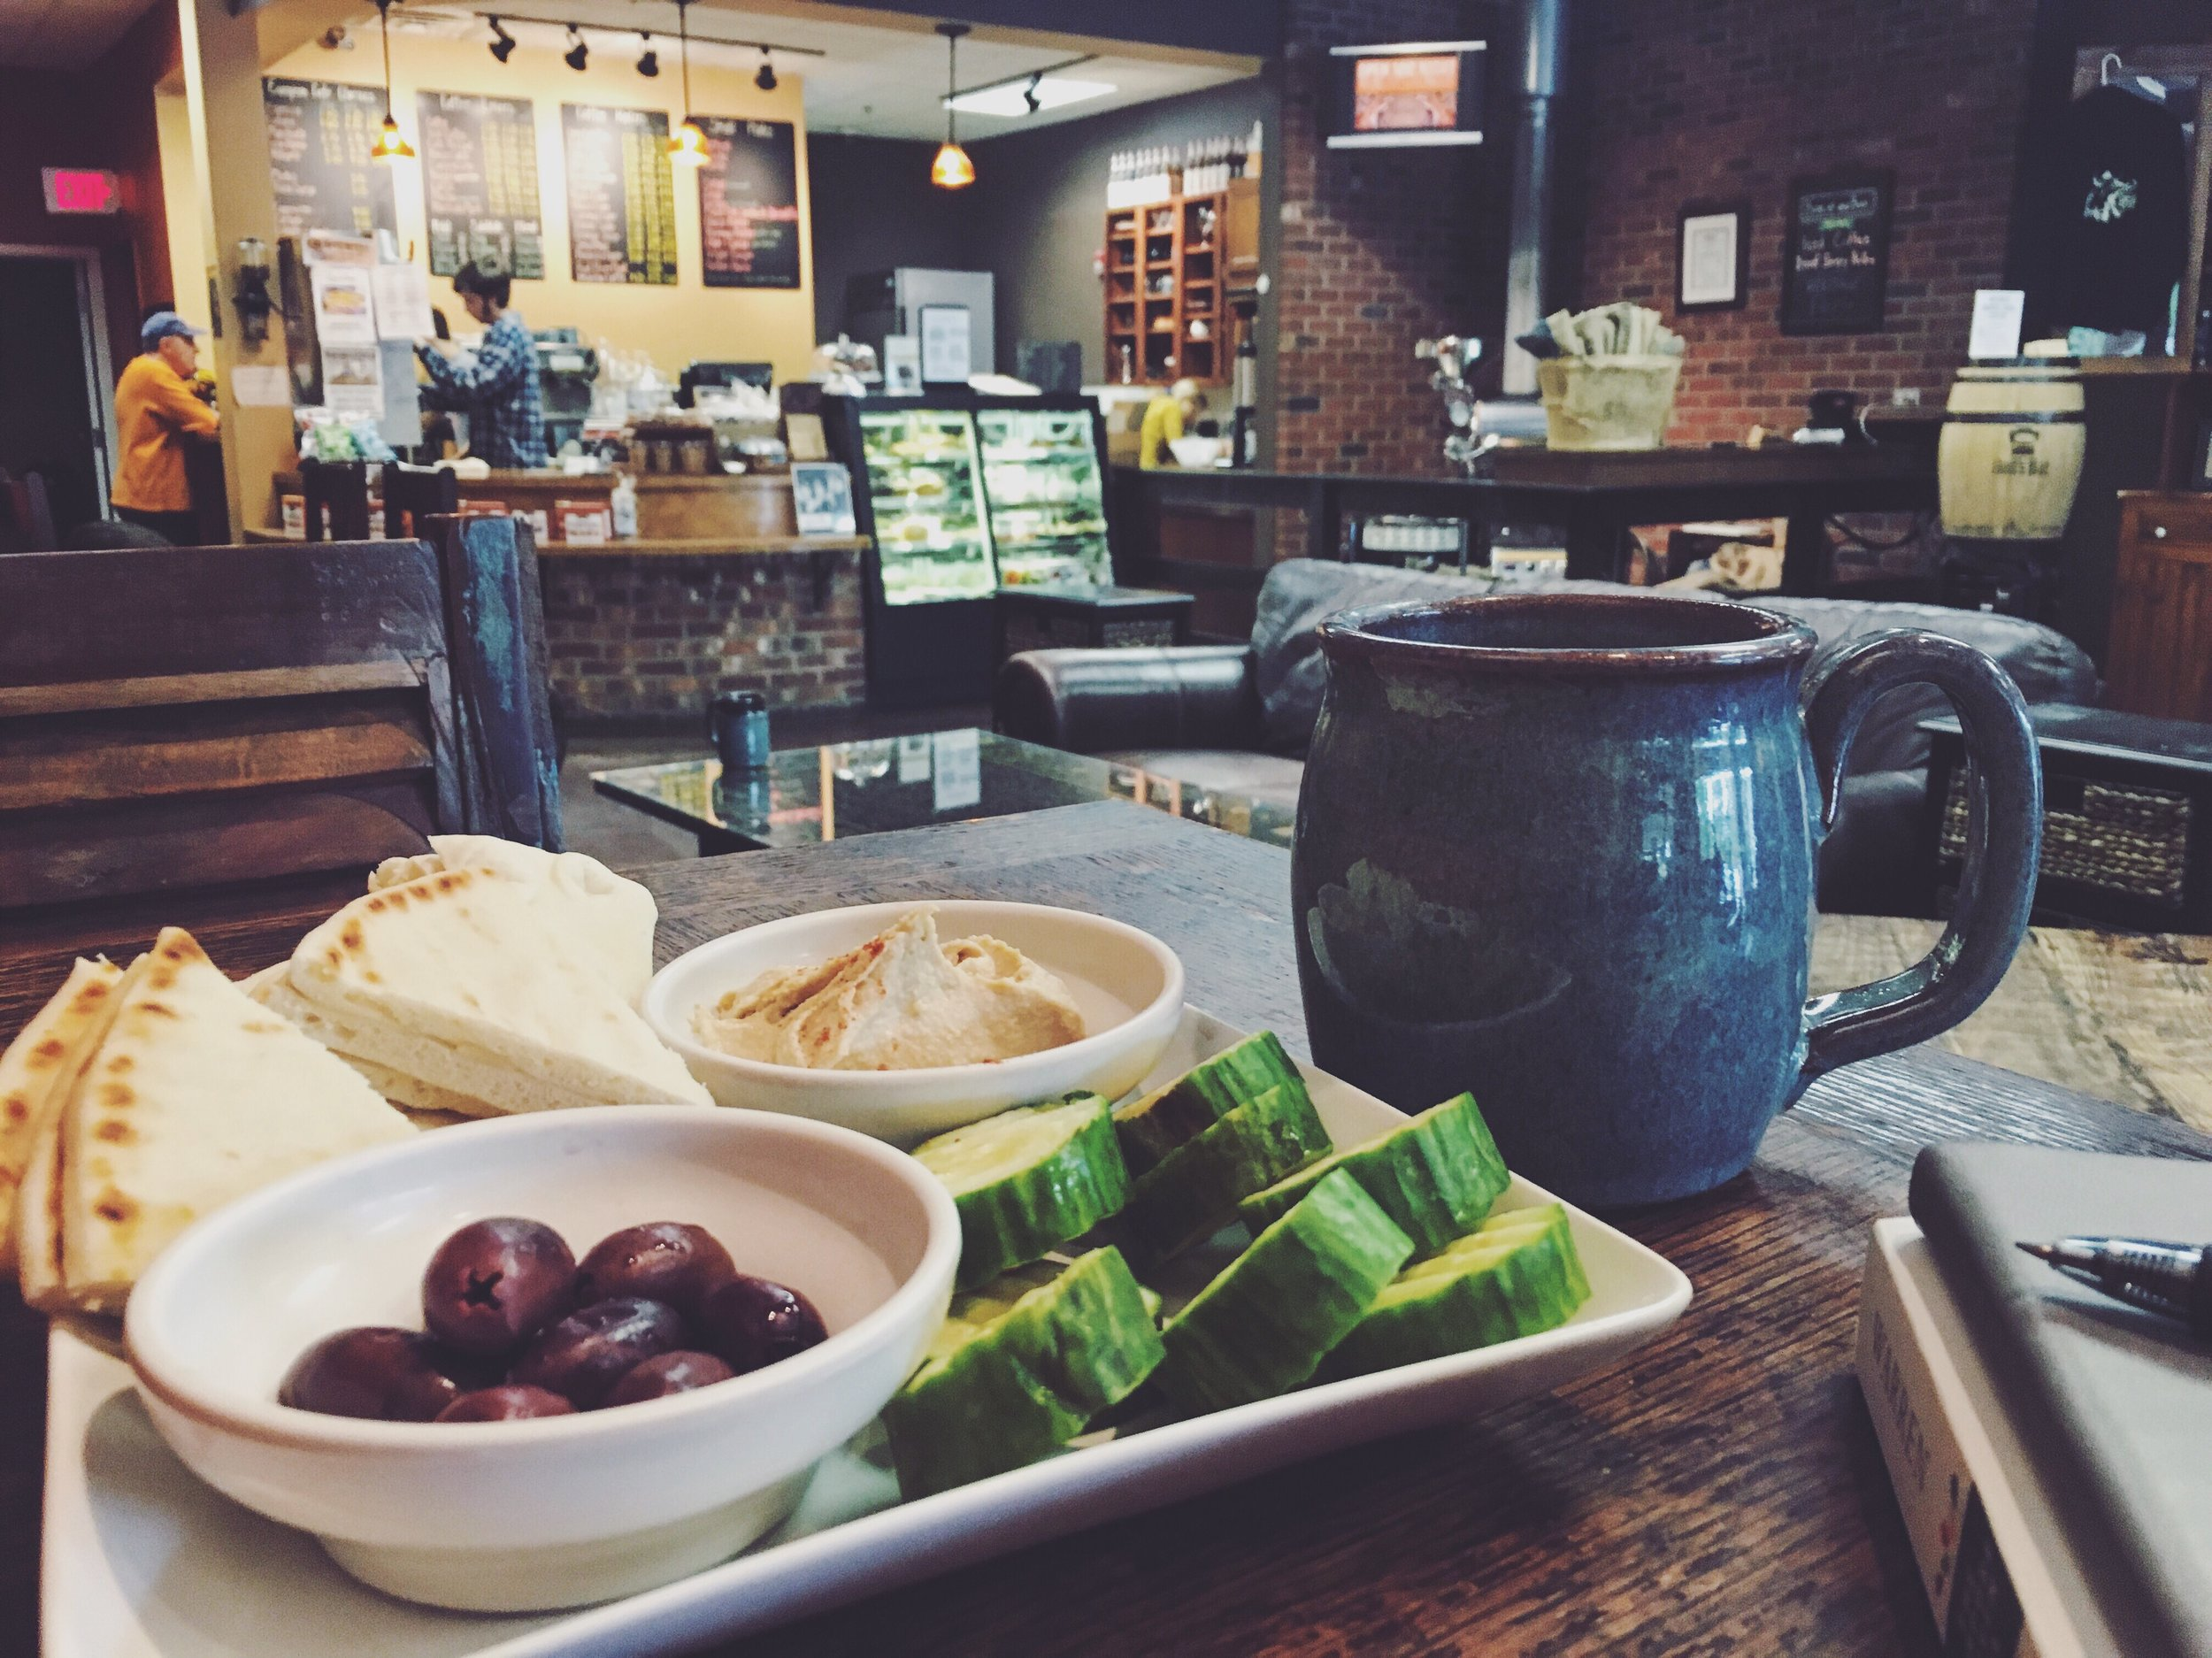 My favorite snack and tea place, Burlap & Bean in Newtown Square.